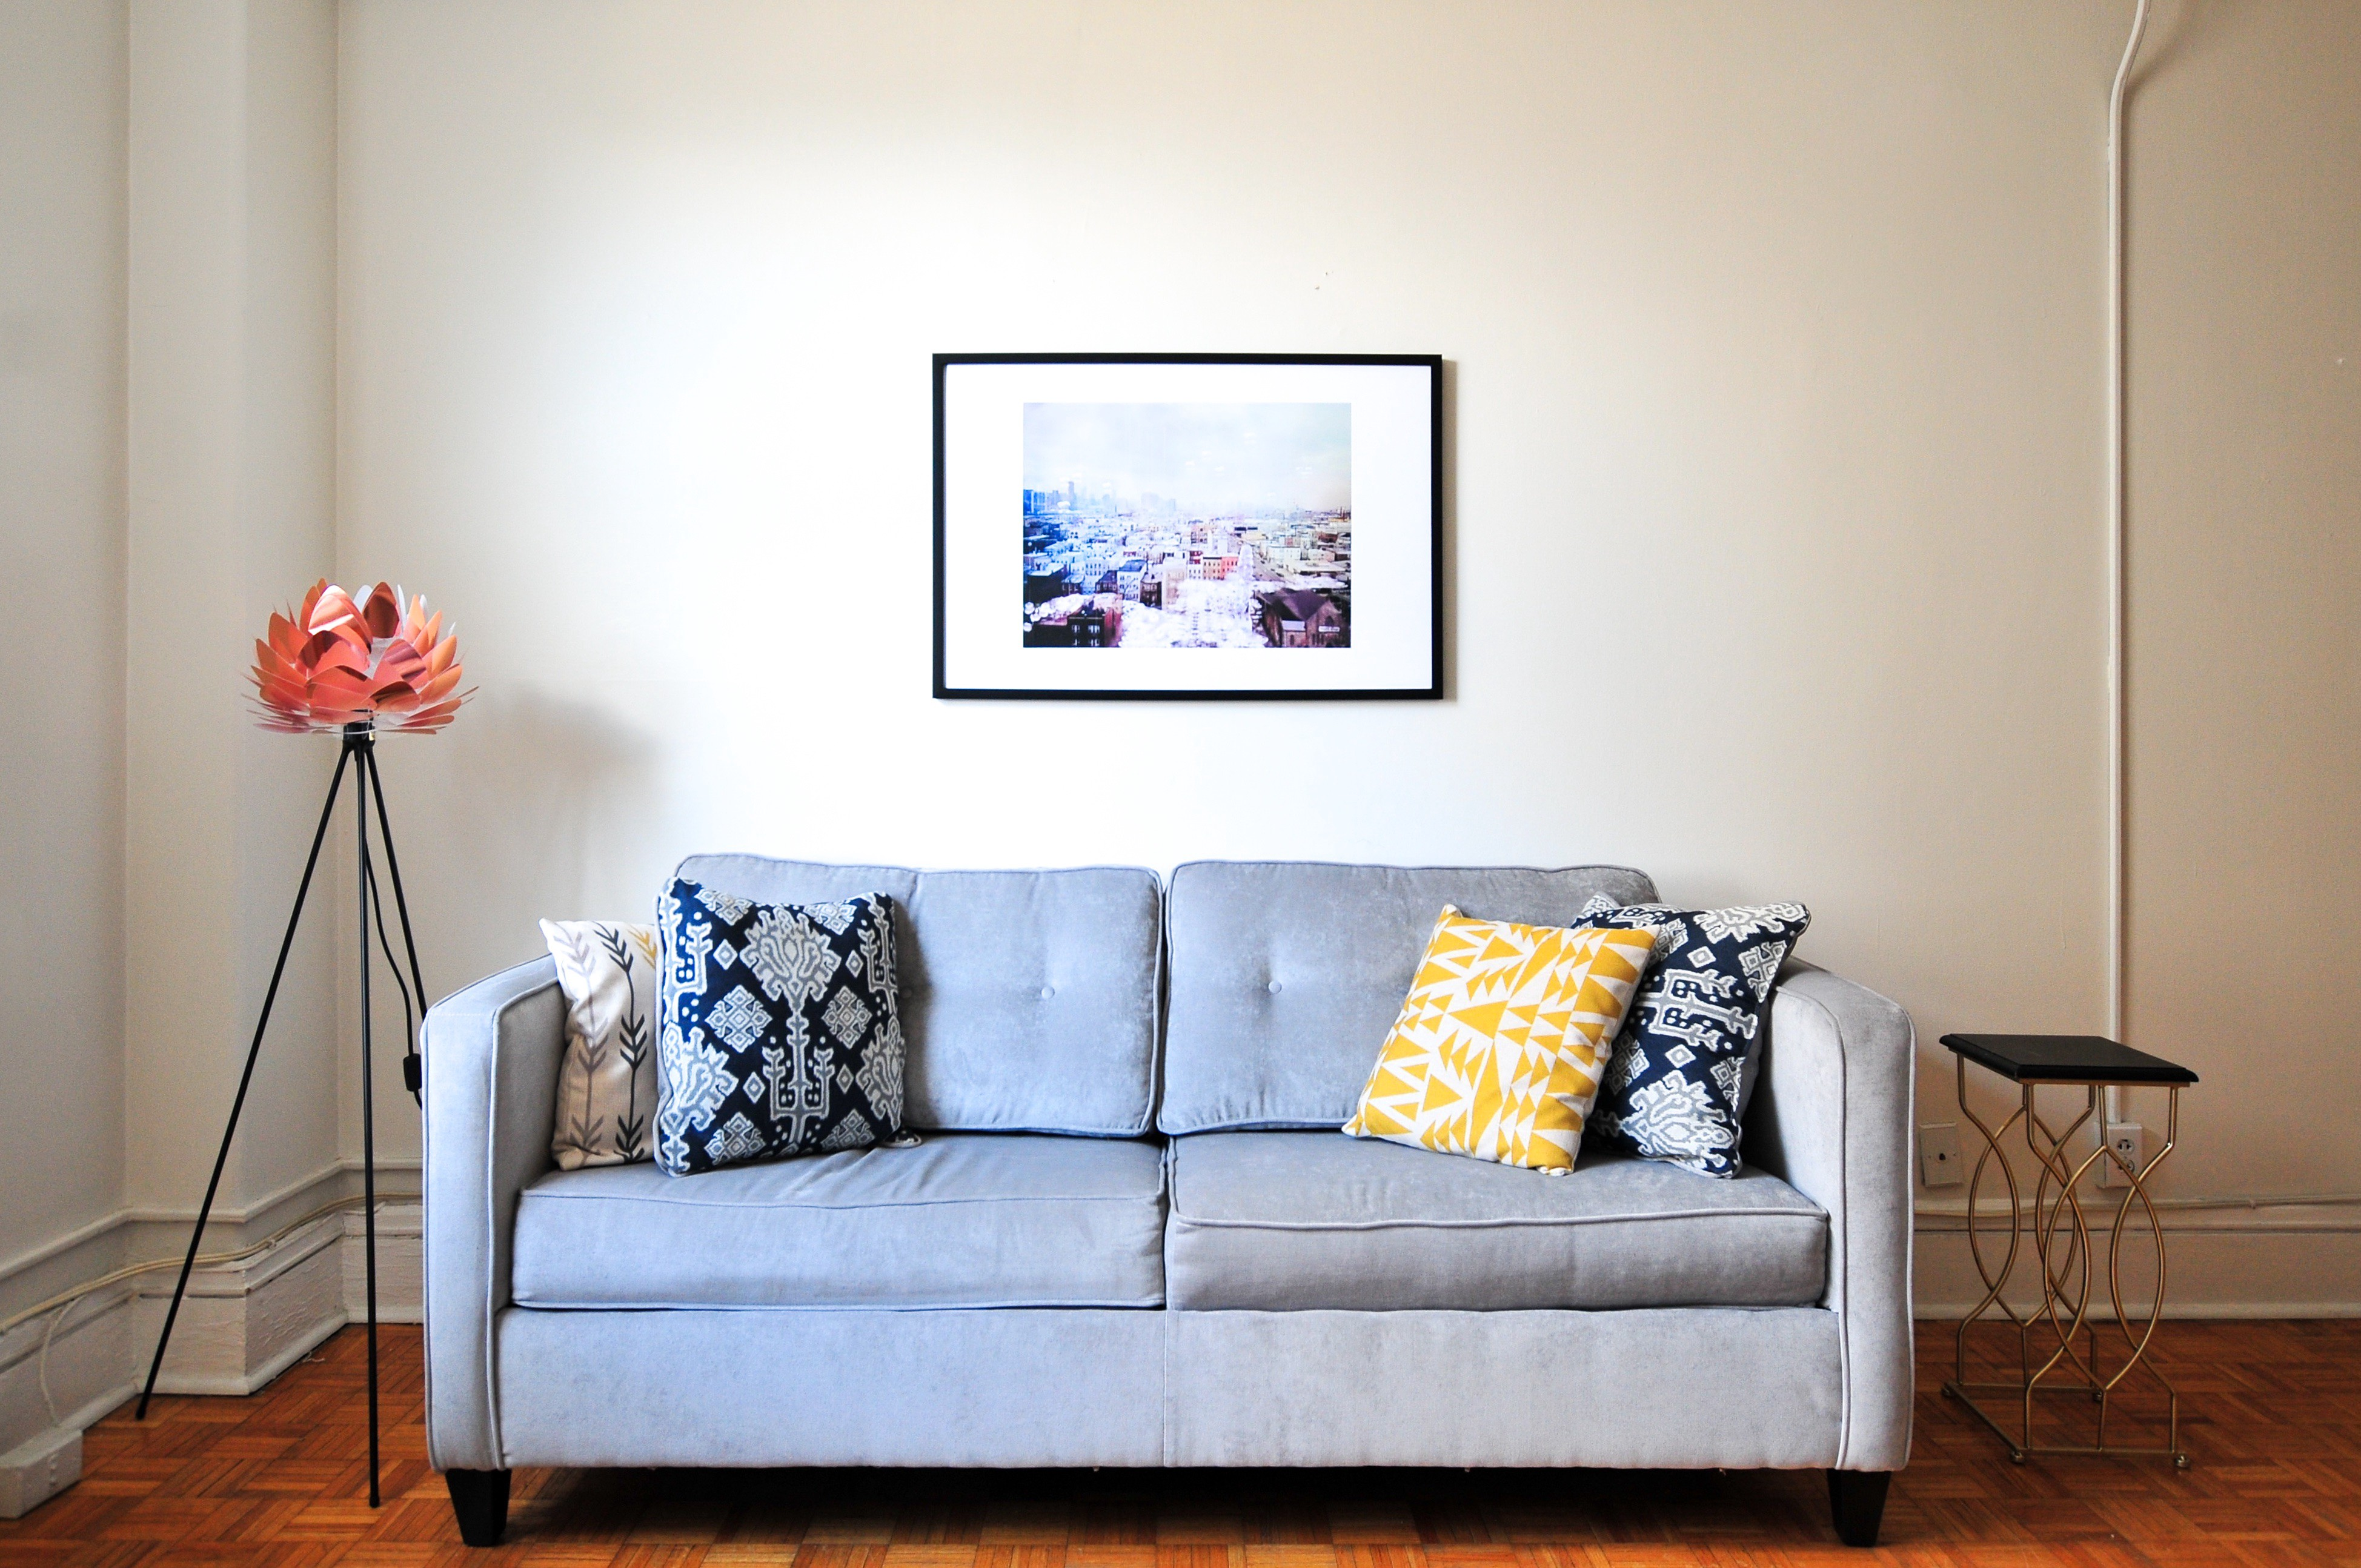 The Couch You Will Change Your Life P S I Love